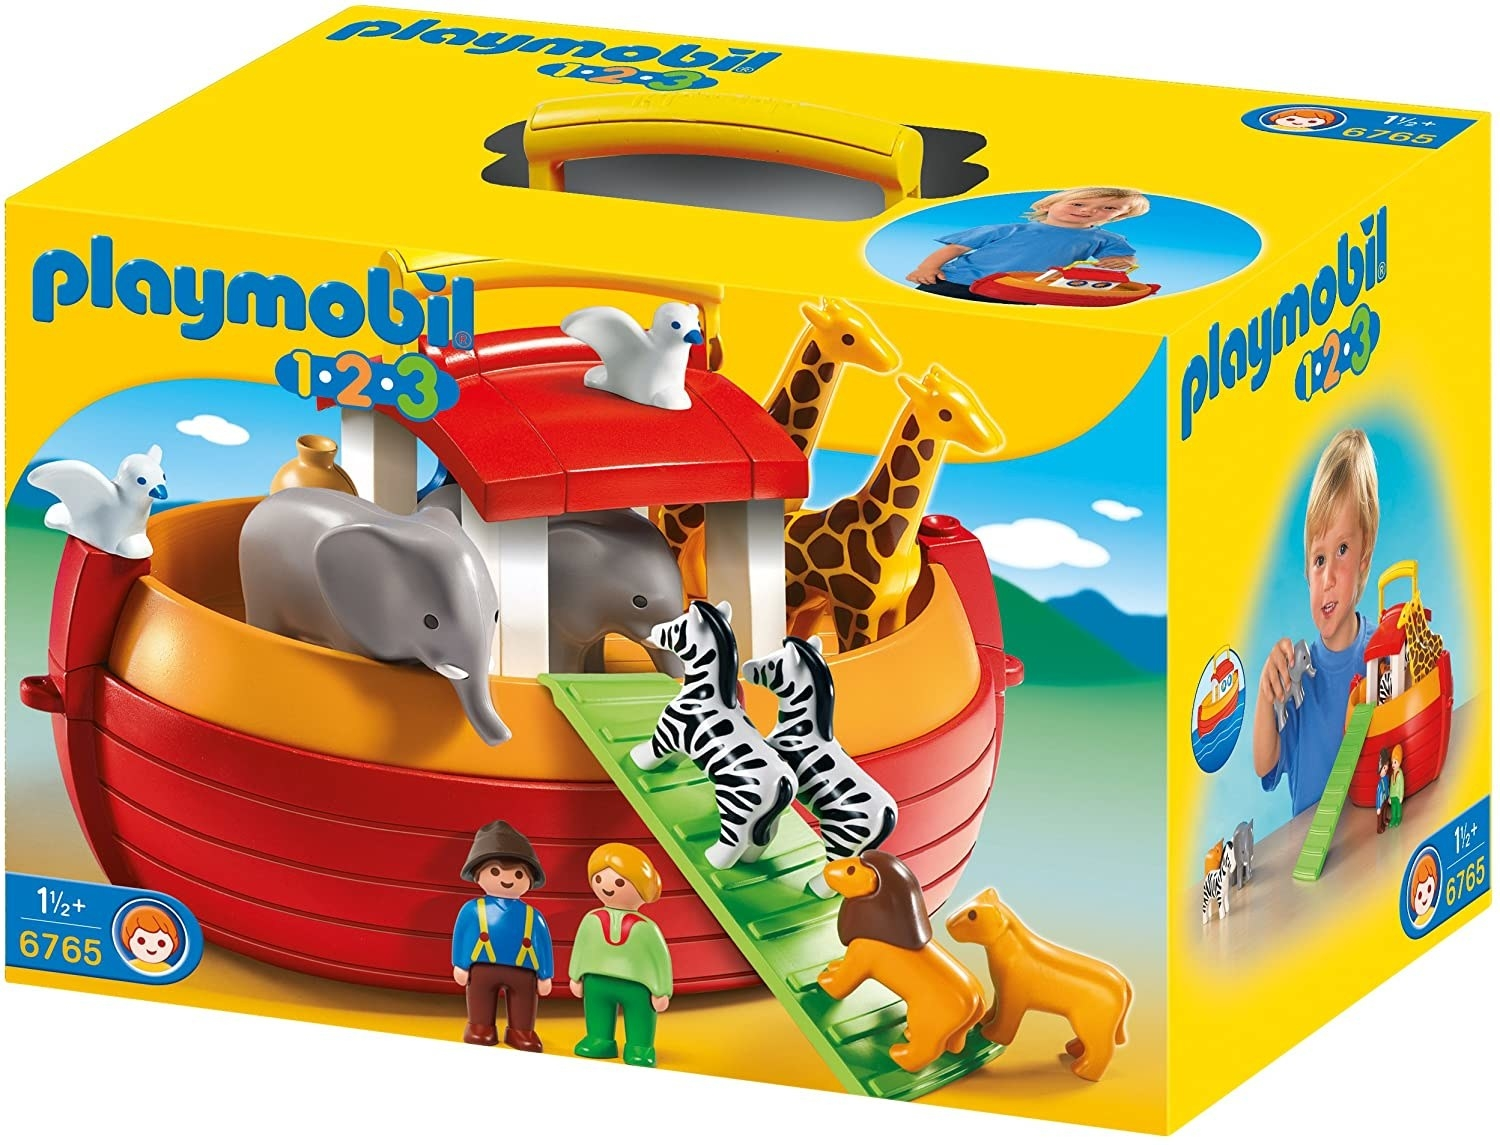 The packaging for a Playmobil ark with lions, elephants, giraffes, zebras, and human figures